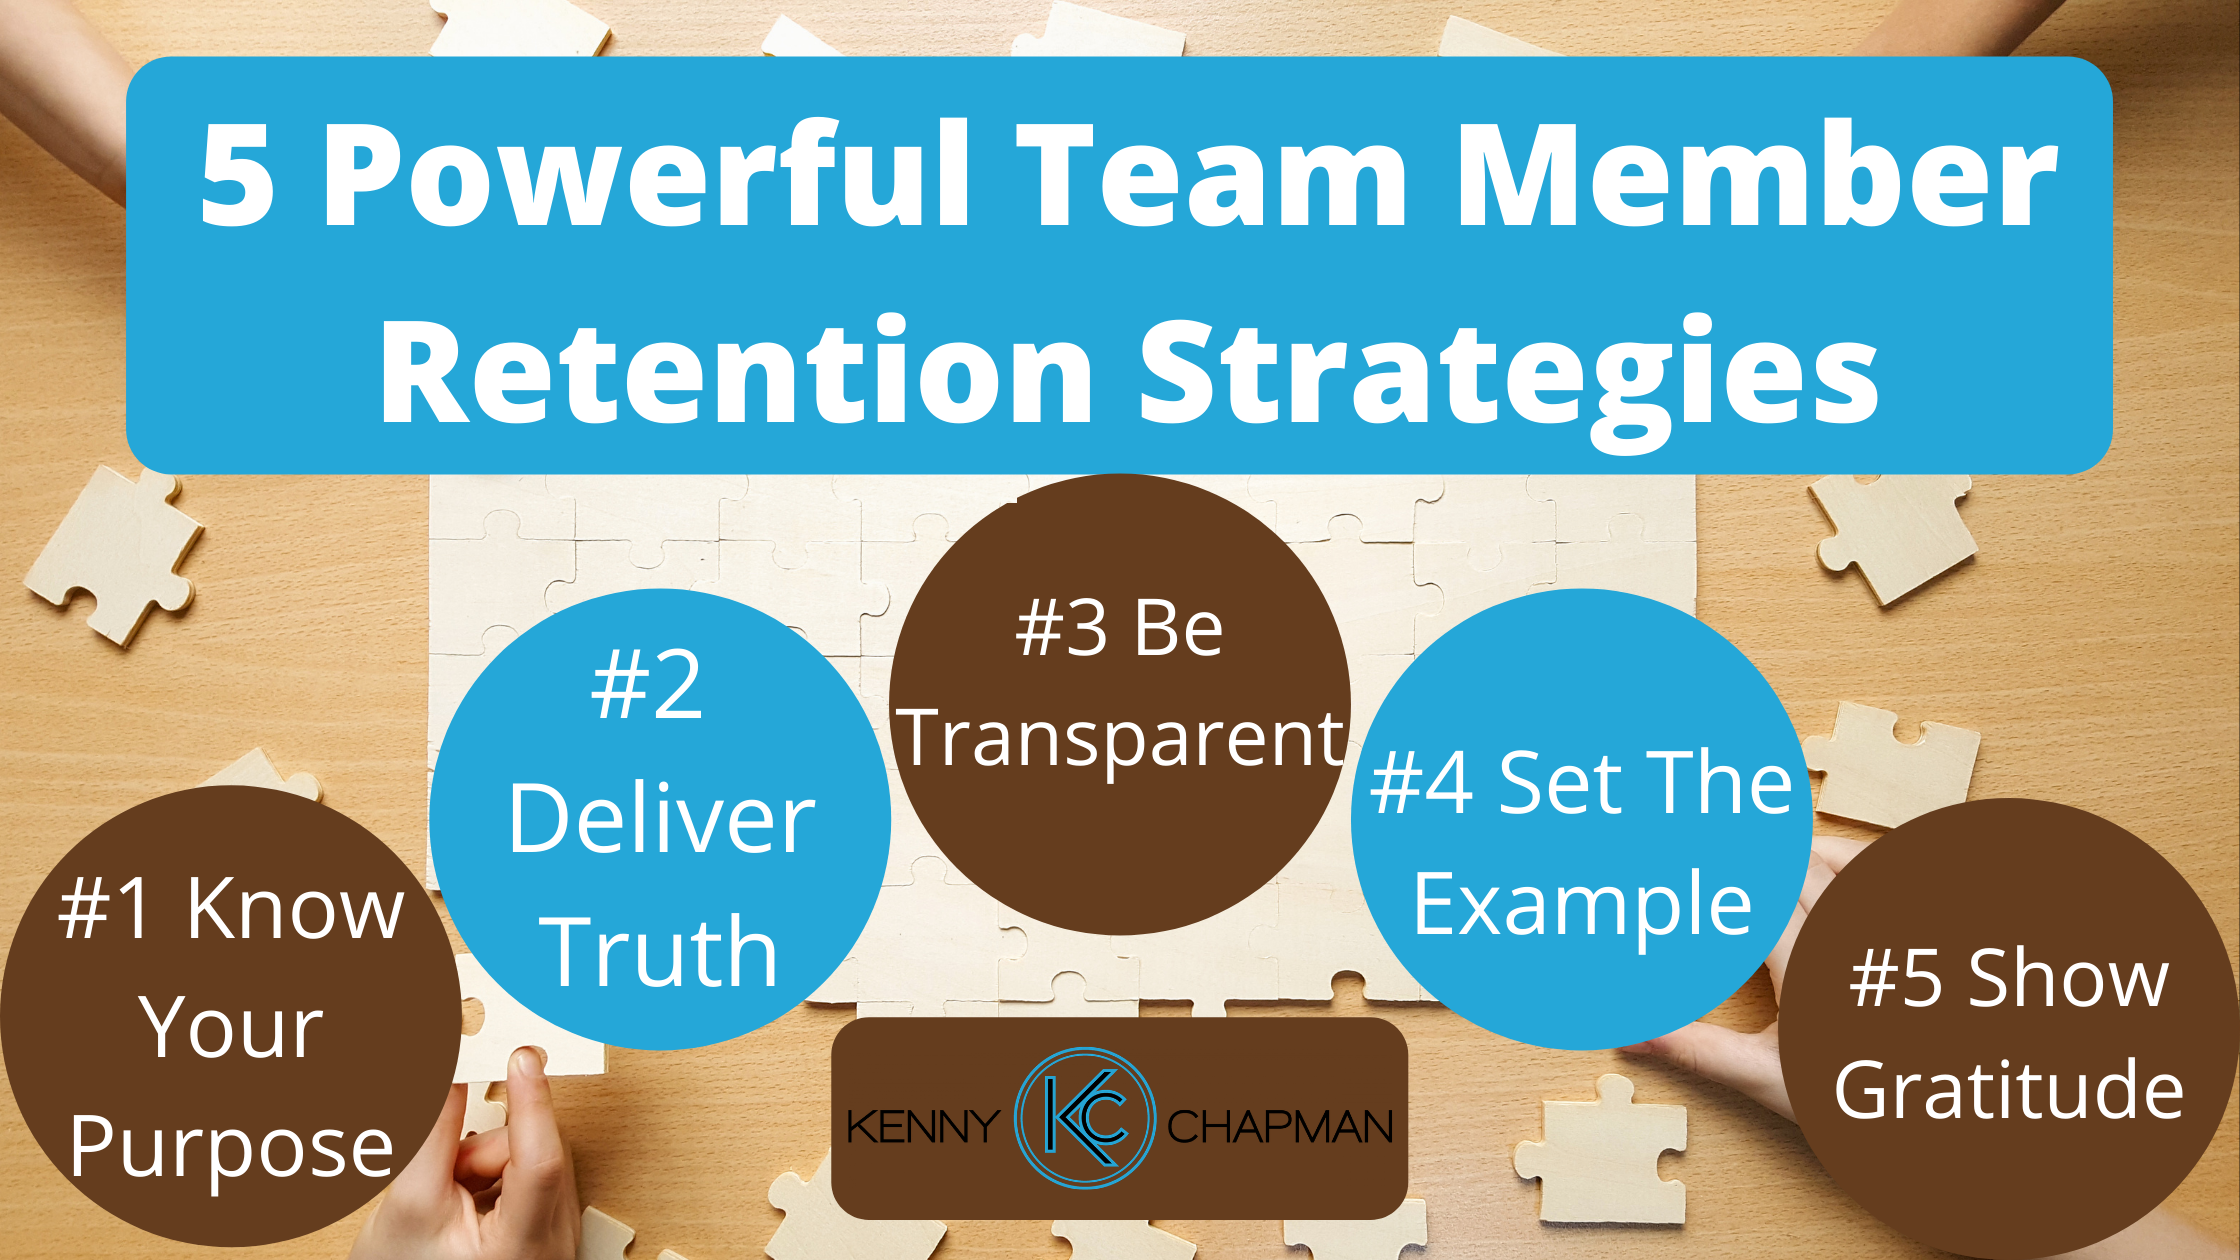 team member retention strategies info